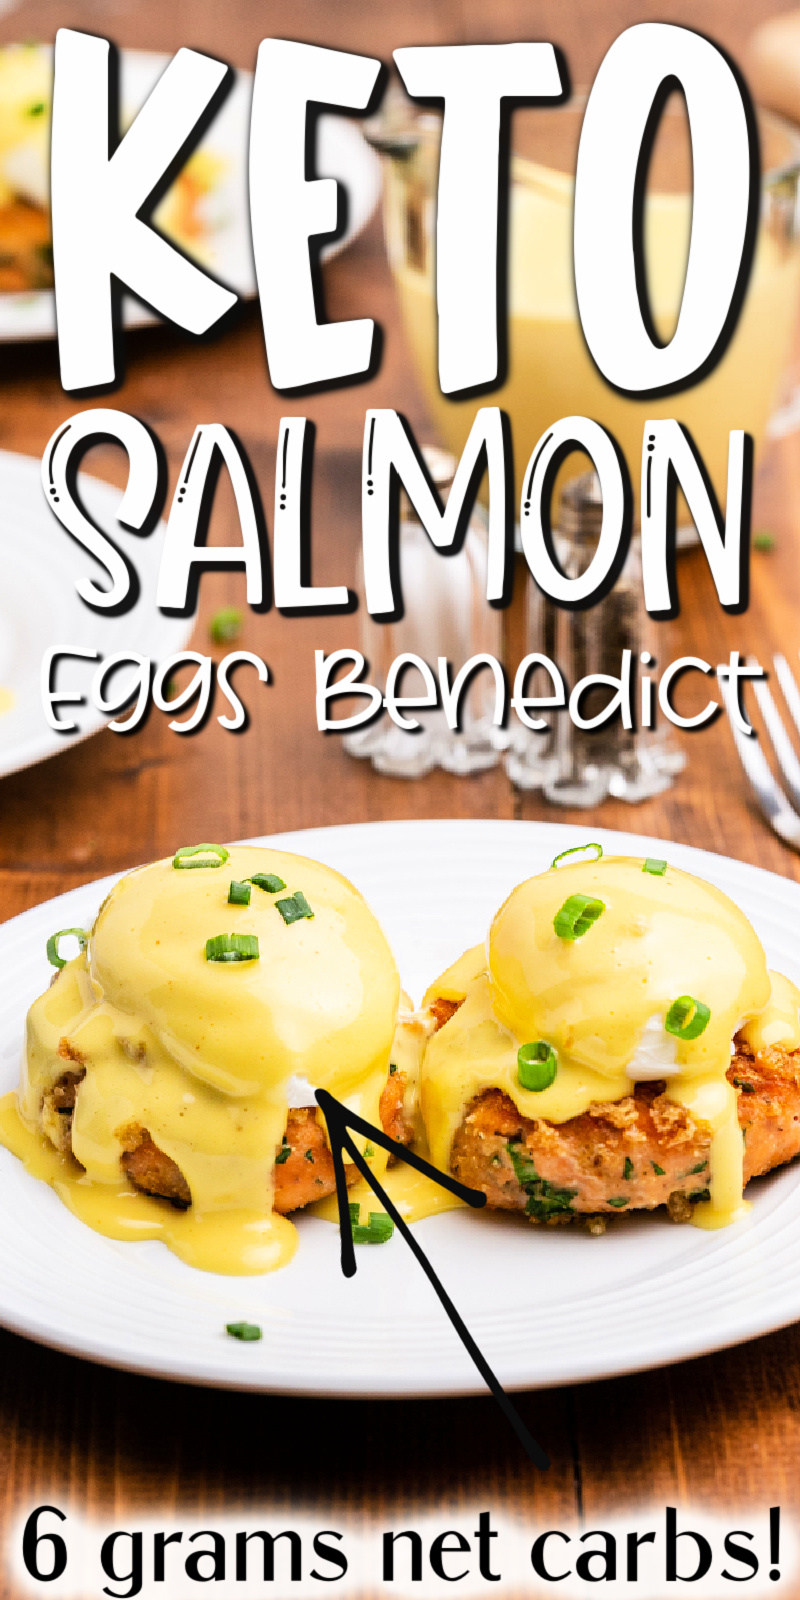 Keto Salmon Eggs Benedict - Breakfast doesn't get much better than this Keto Salmon Eggs Benedict! Crispy salmon cakes topped with perfectly poached eggs, easy blender hollandaise sauce, and fresh chopped chives, even the non-keto peeps will be asking for more! #keto #lowcarb #glutenfree #salmon #fish #eggs #benedict #breakfast #brunch #hollandaise #recipe